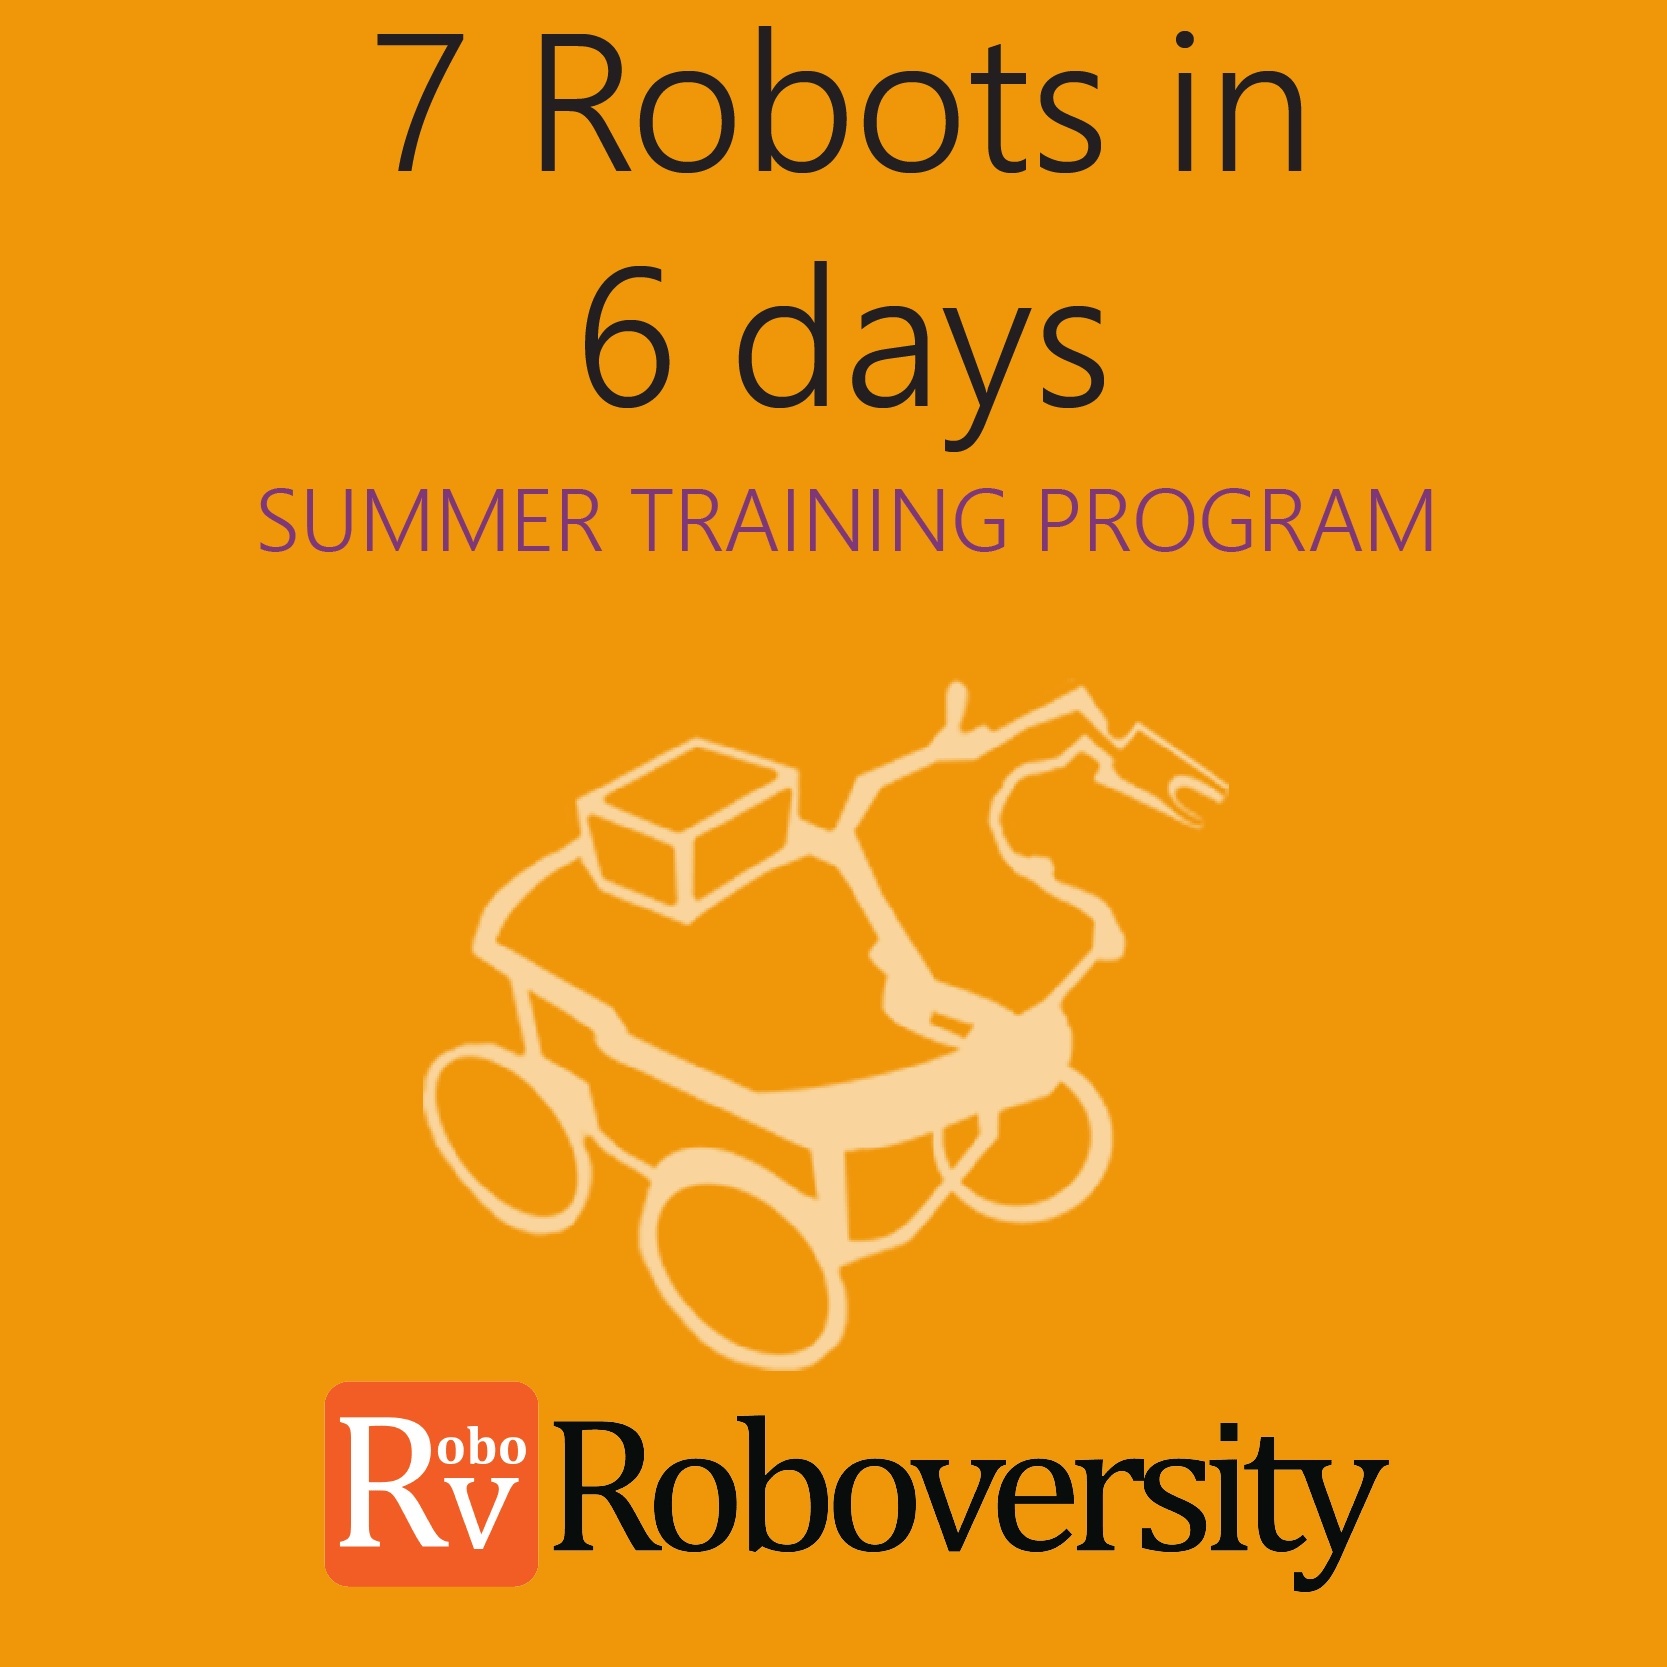 Summer Training Program on 7 Robots in 6 Days  at Skyfi Labs Center SKD Group of Institutions  Workshop